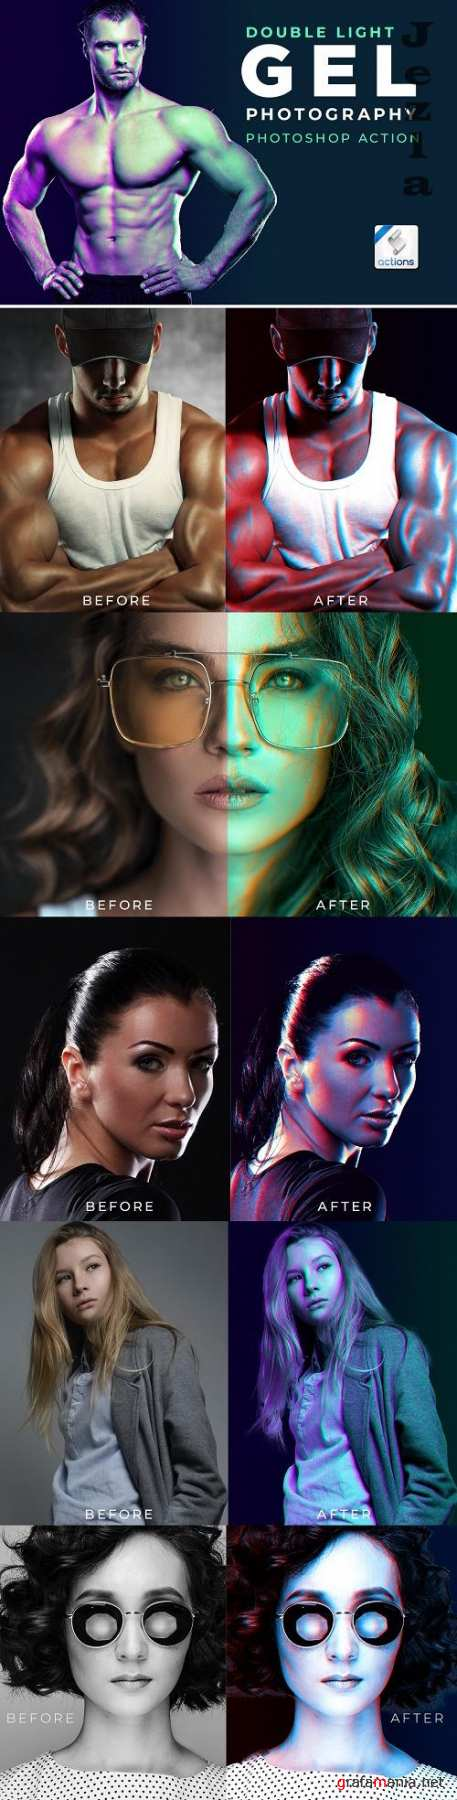 Dual Lighting Gel Photoshop Action - 520322